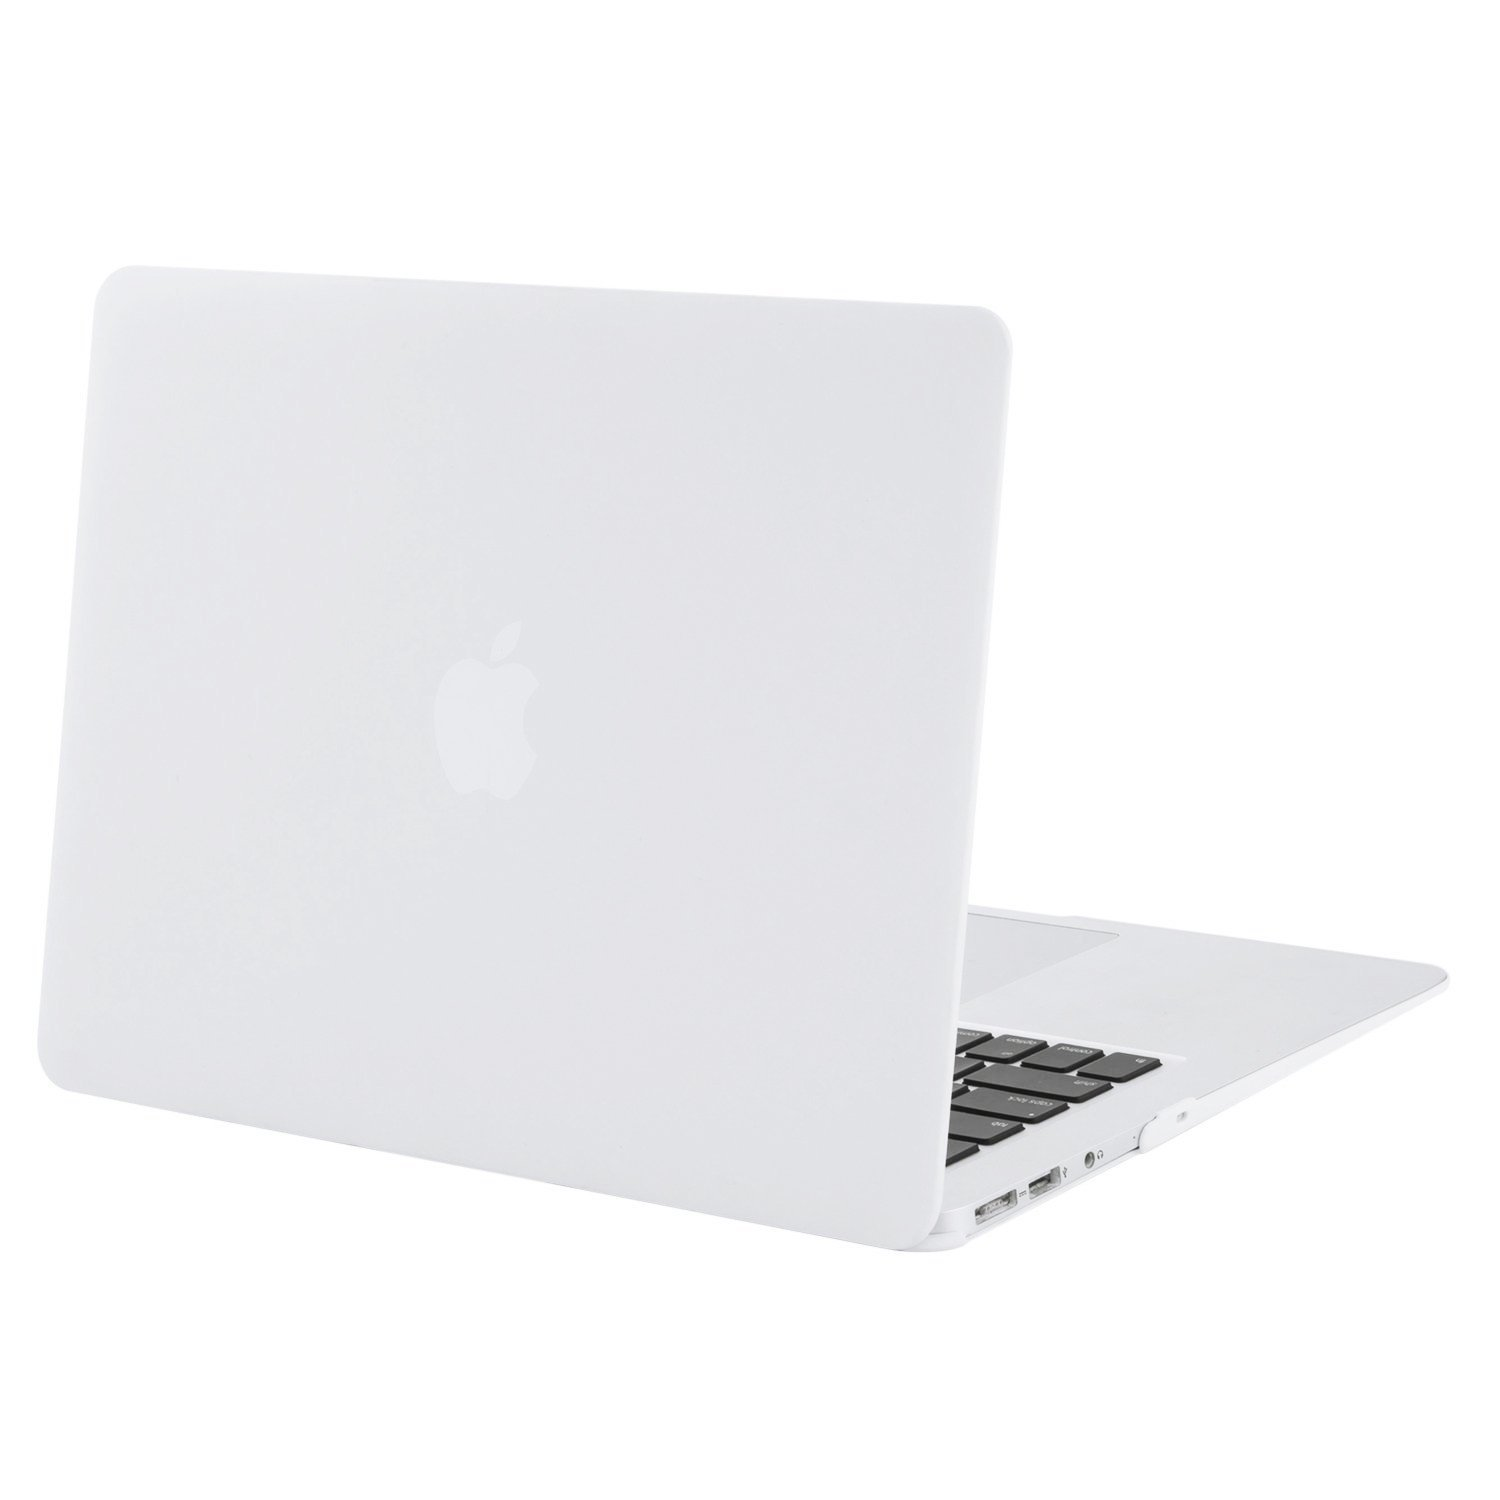 "Codegen Apple 15"" 15 inc Macbook Pro A1707 Beyaz Kılıf Kapak CMPT-156W"